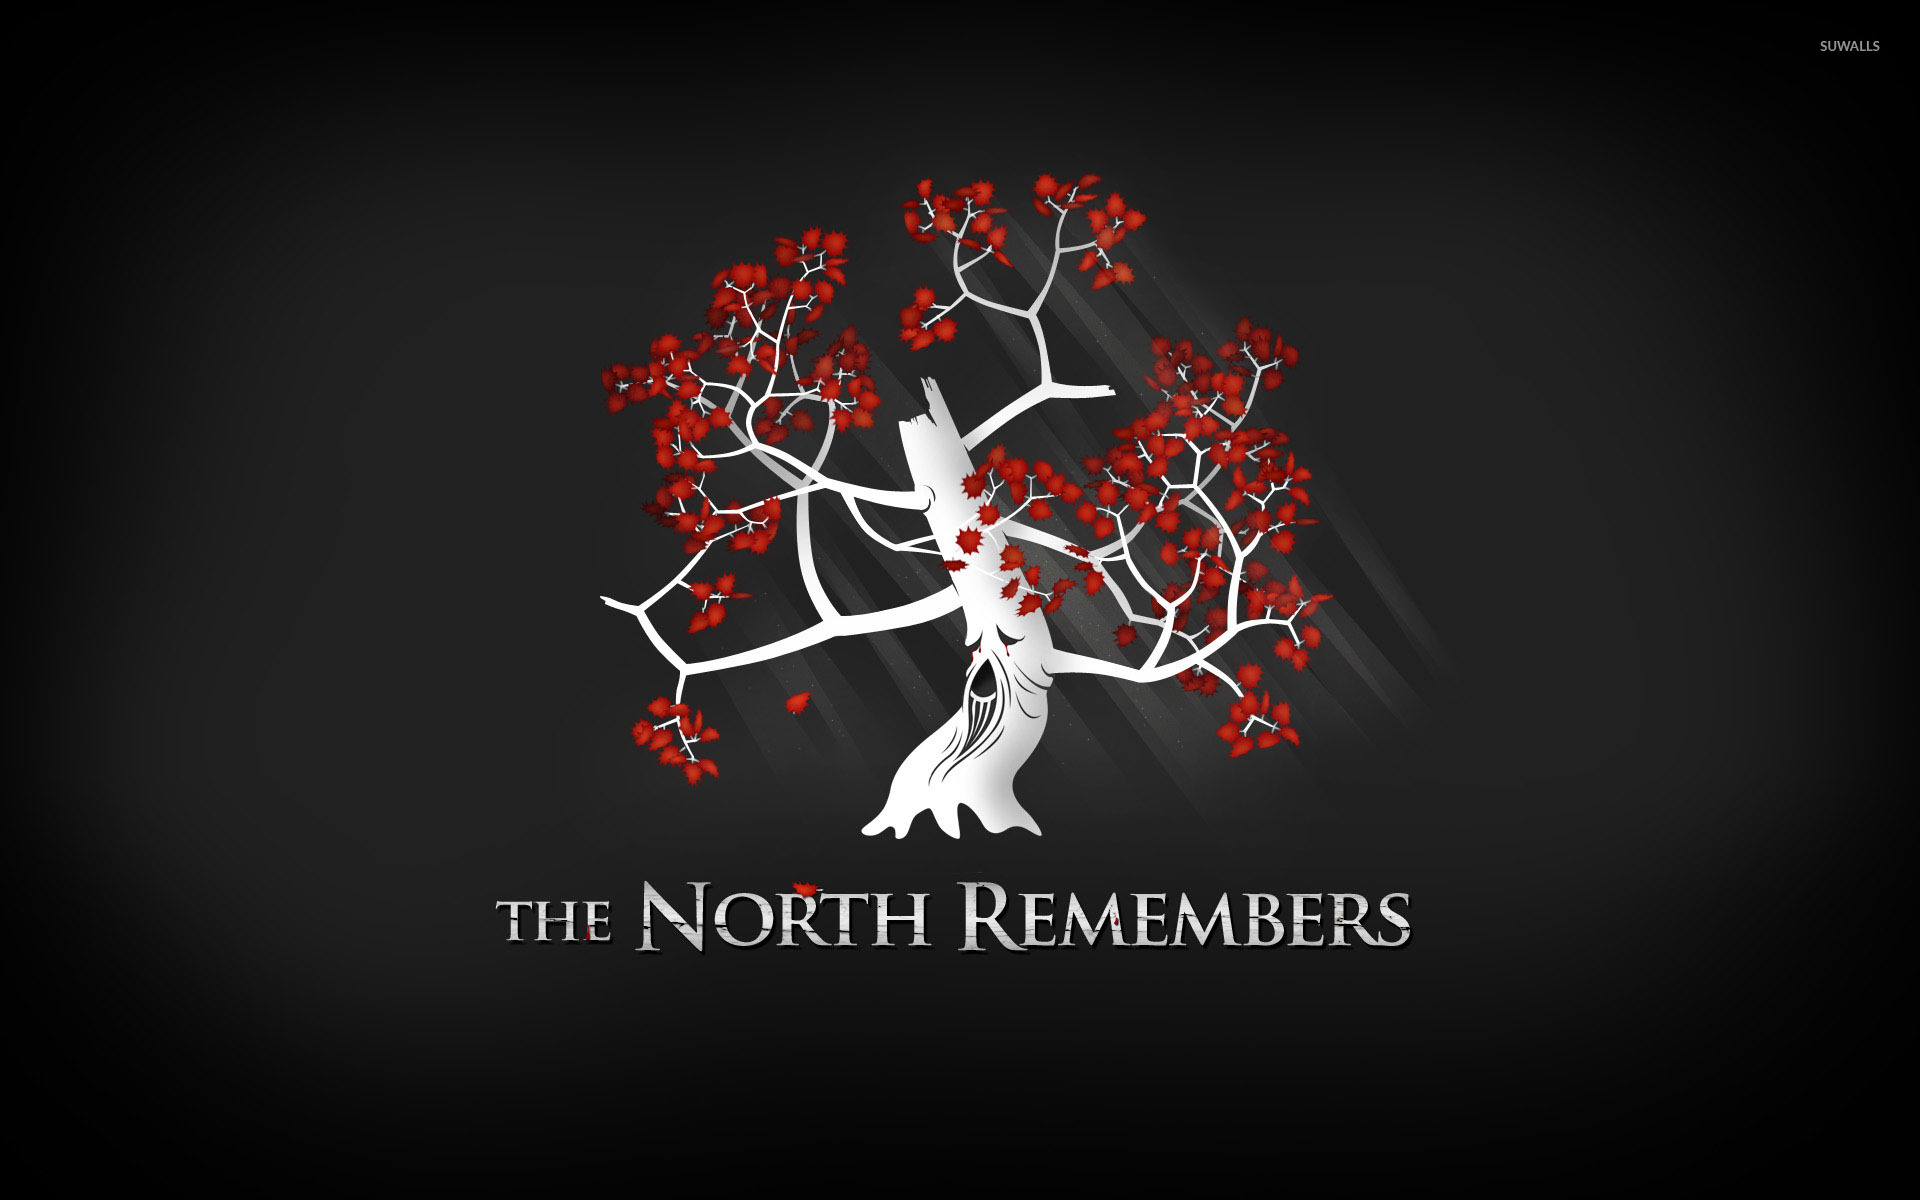 The North Remembers wallpaper   TV Show wallpapers   28628 1920x1200